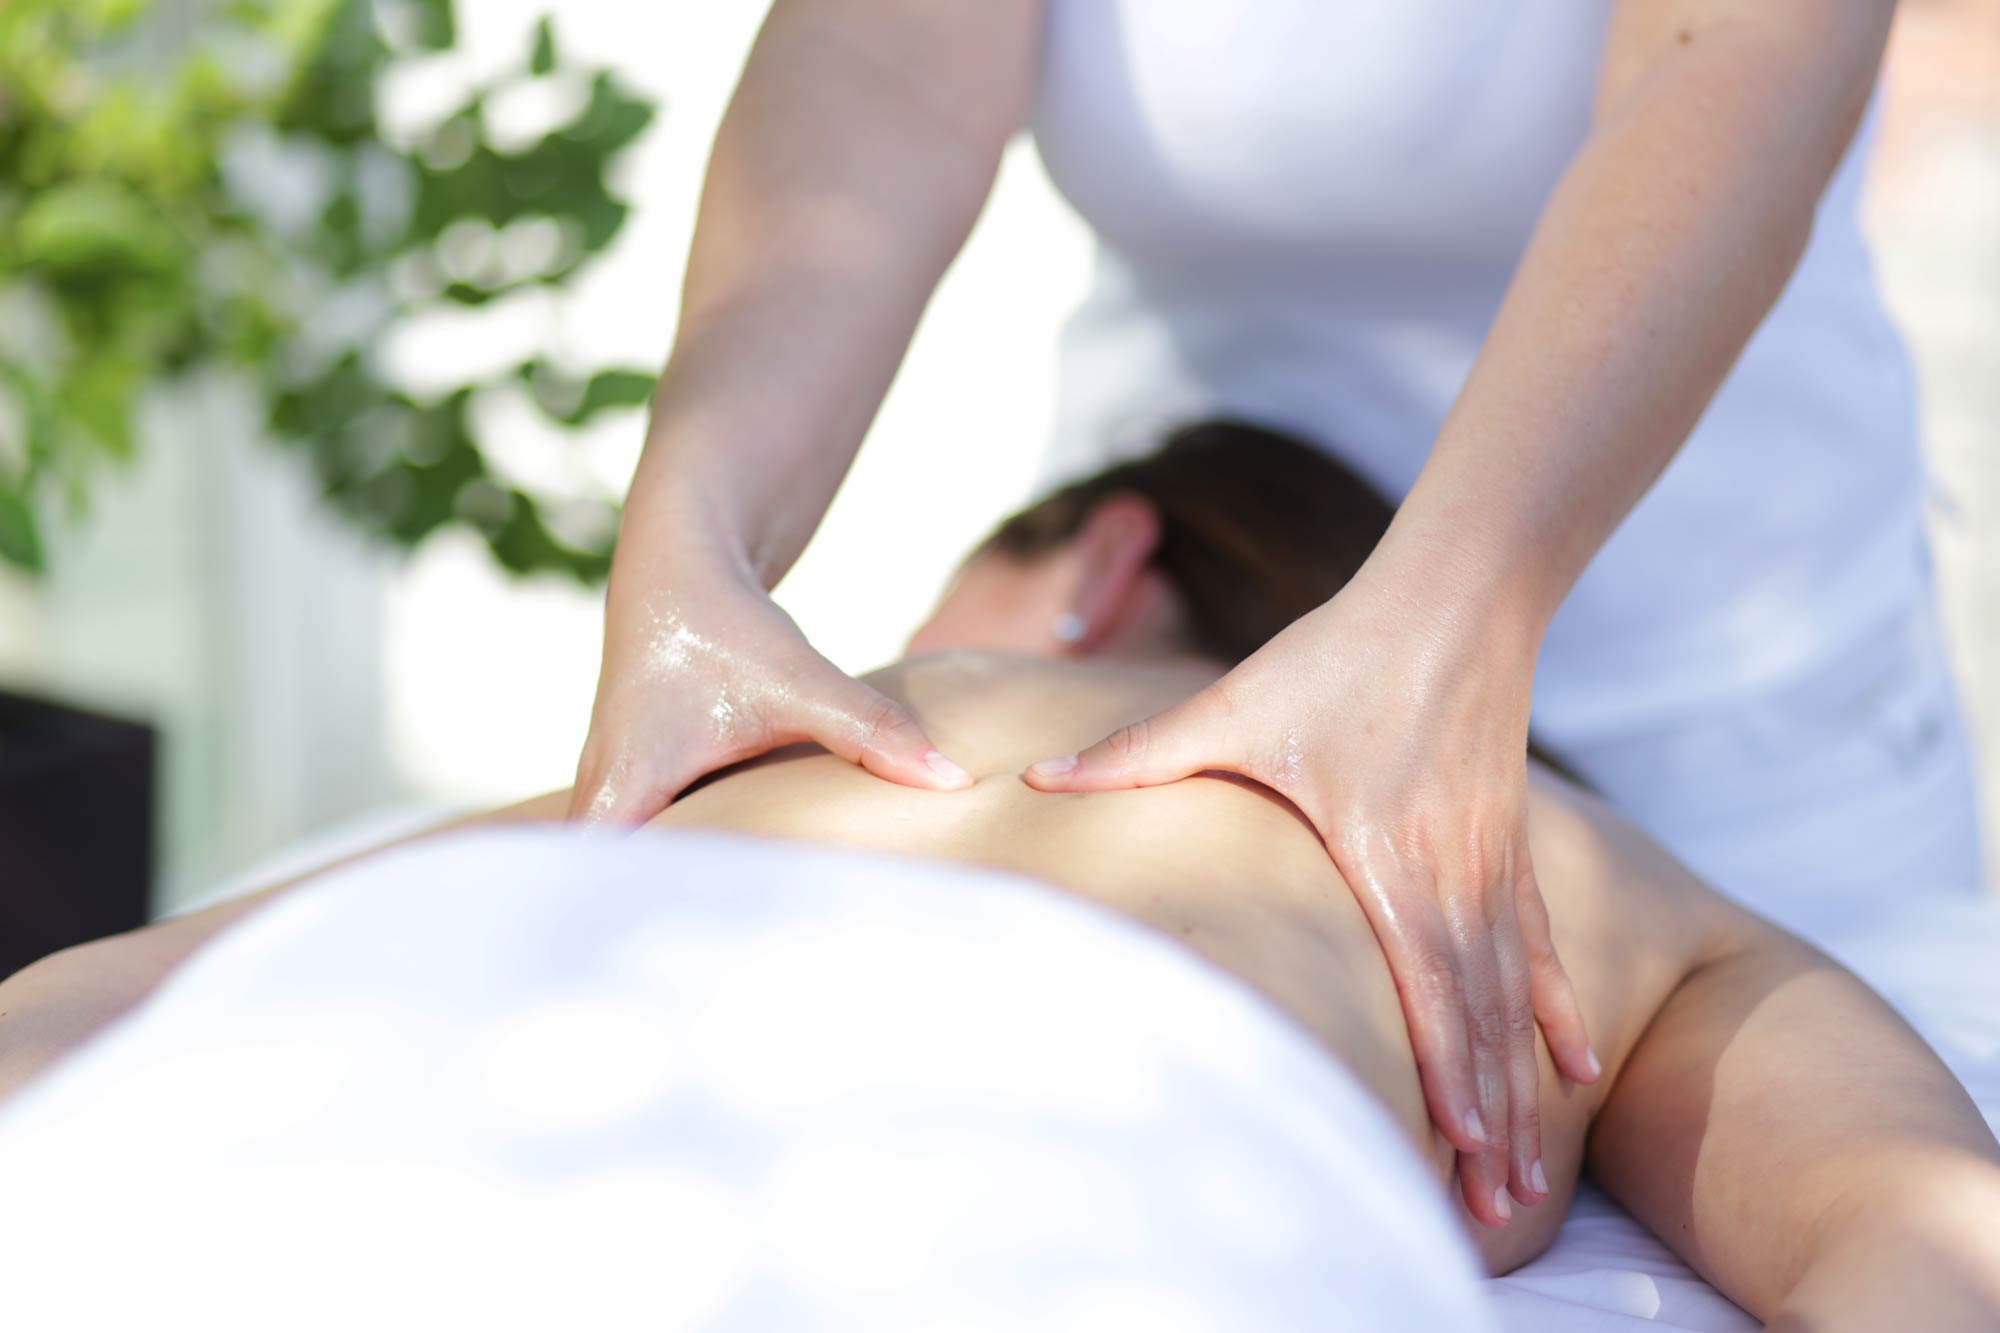 massaging person's back